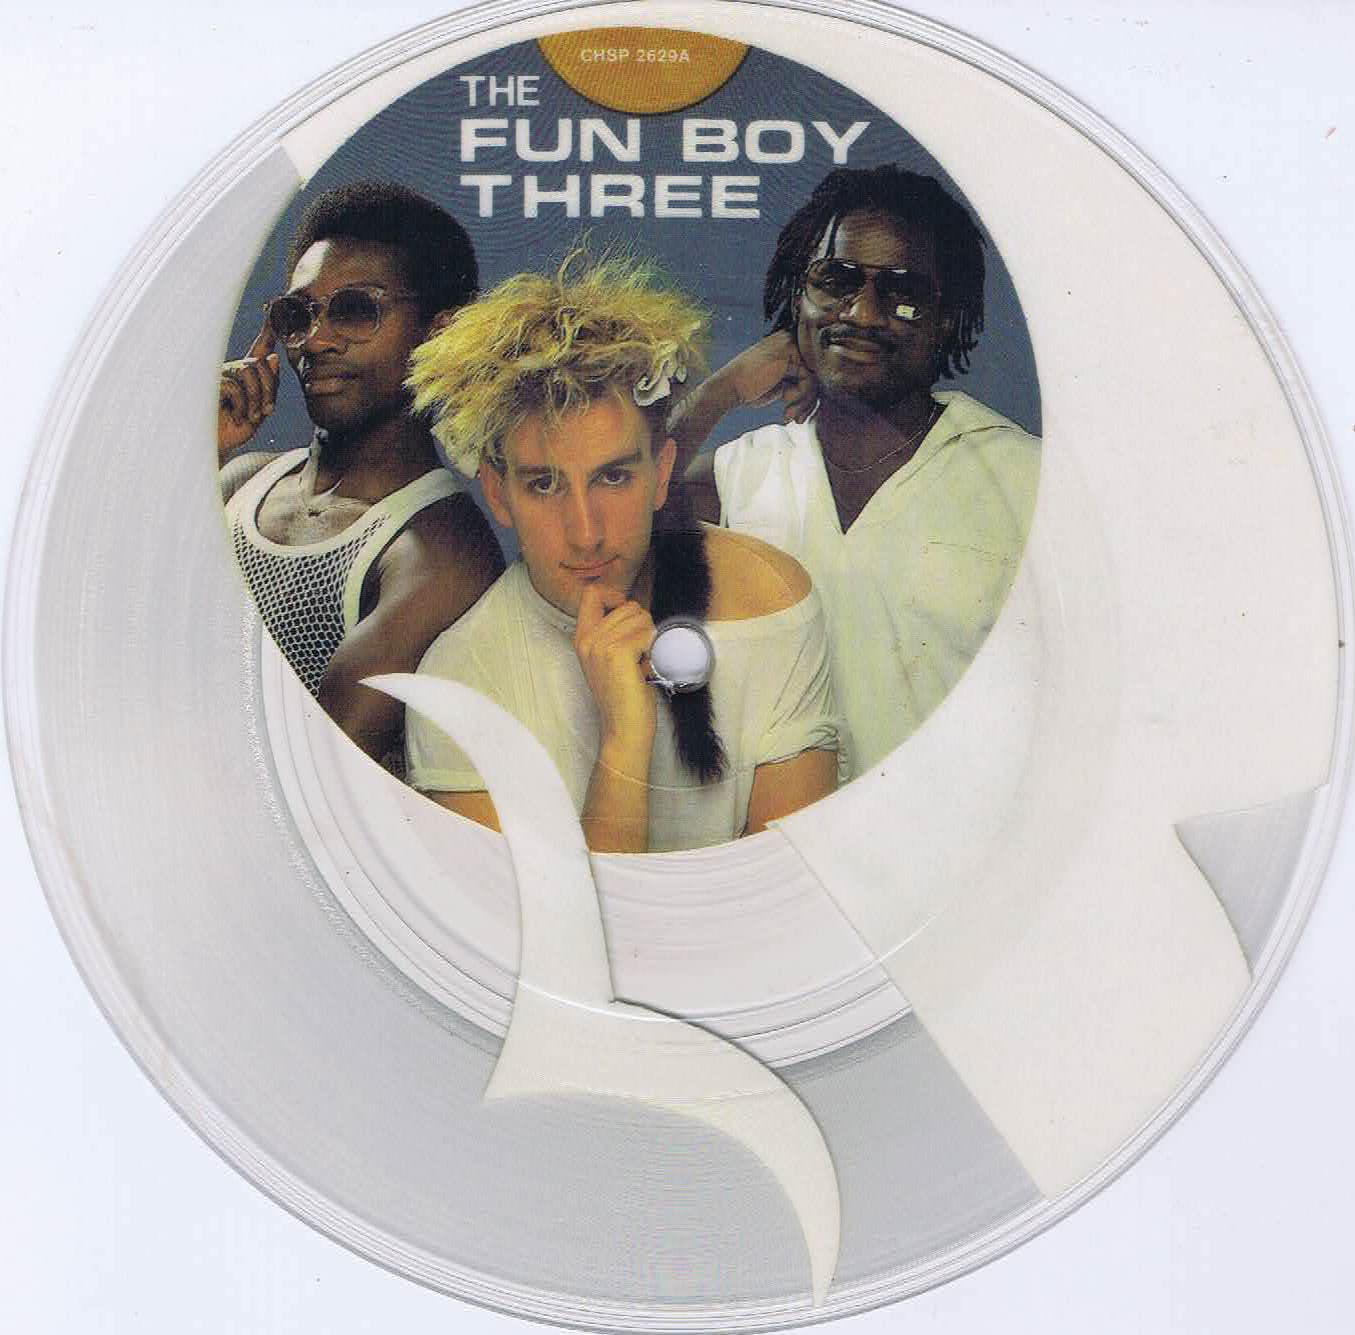 The Fun Boy Three Summertime 7 Inch Picture Disc